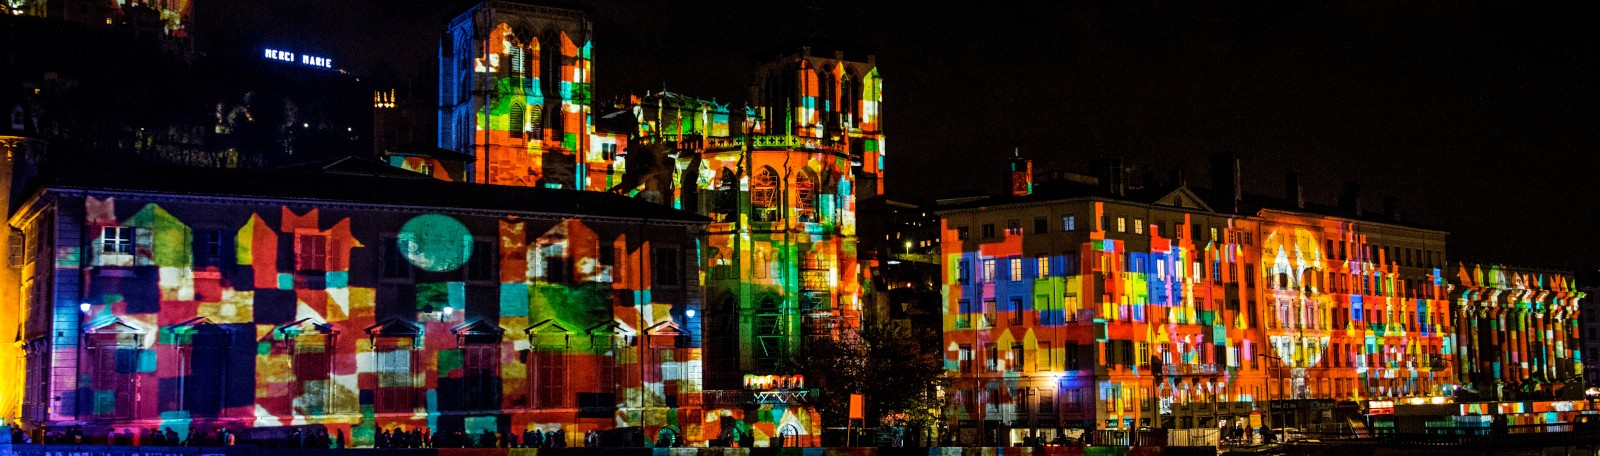 Focus on the 2019 Festival of Lights in Lyon